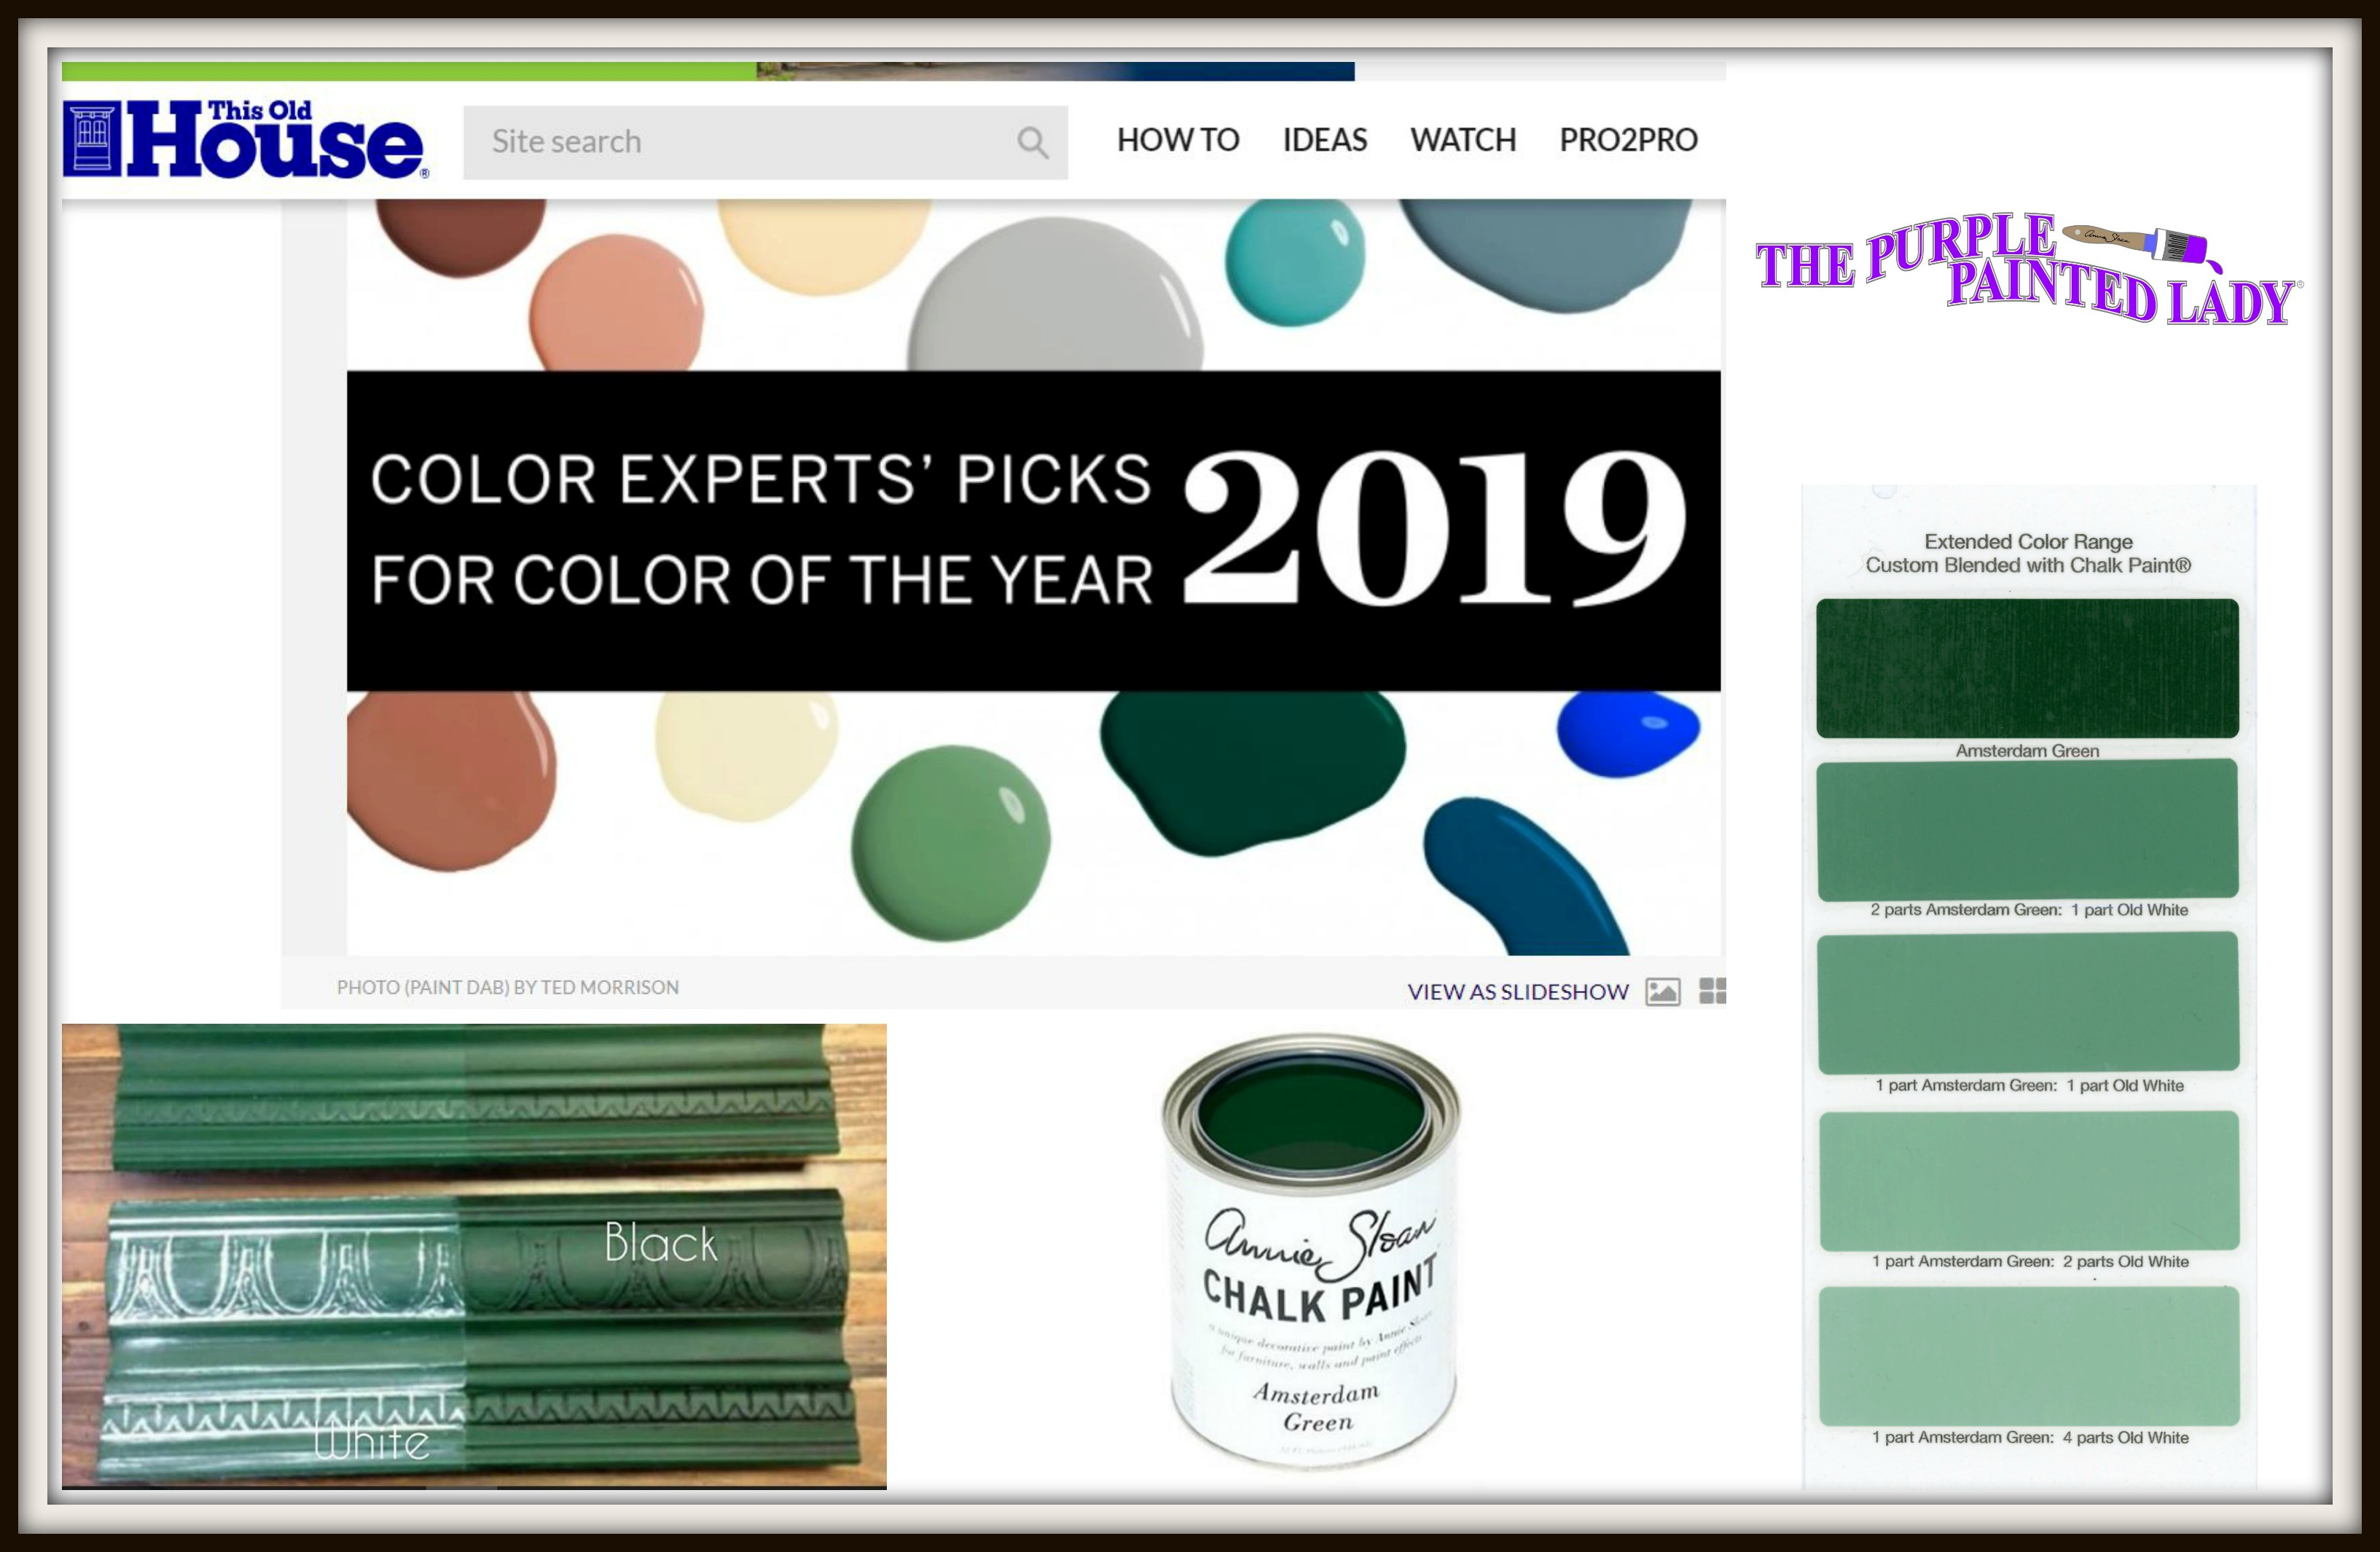 Amsterdam Green This Old House S Color Experts Picks For 2019